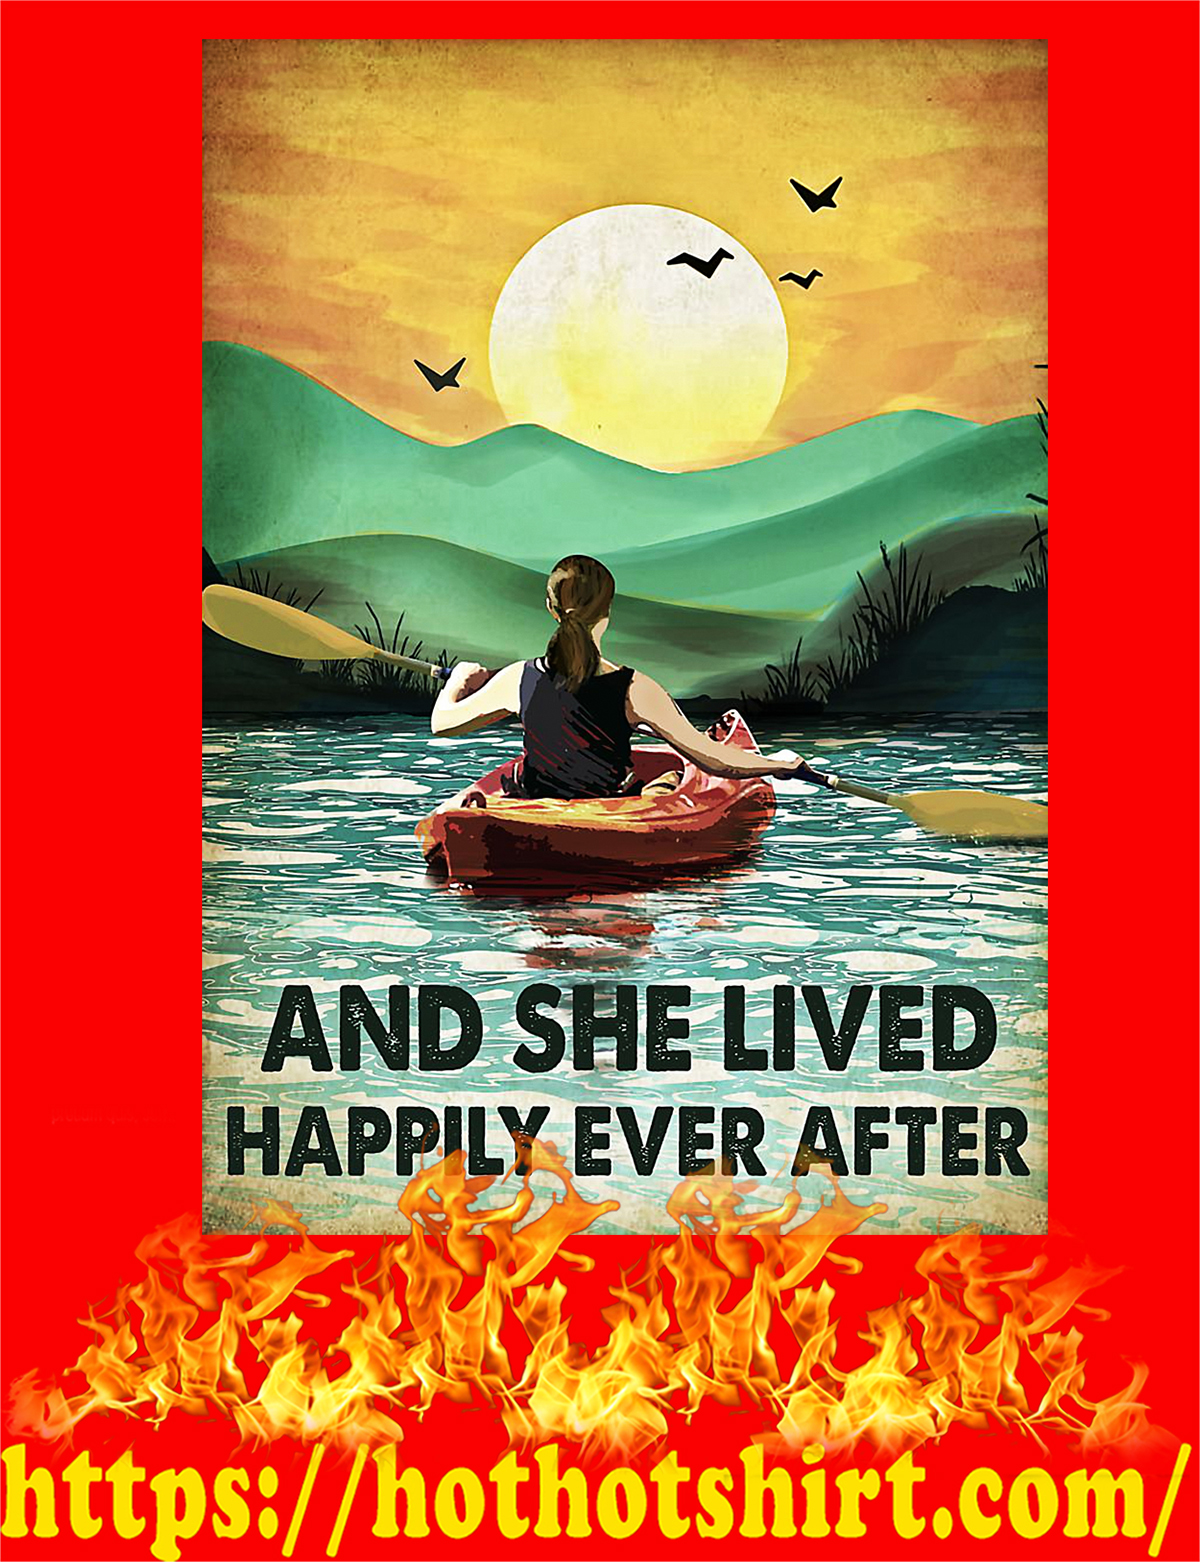 Rowing And she lived happily ever after poster - A2